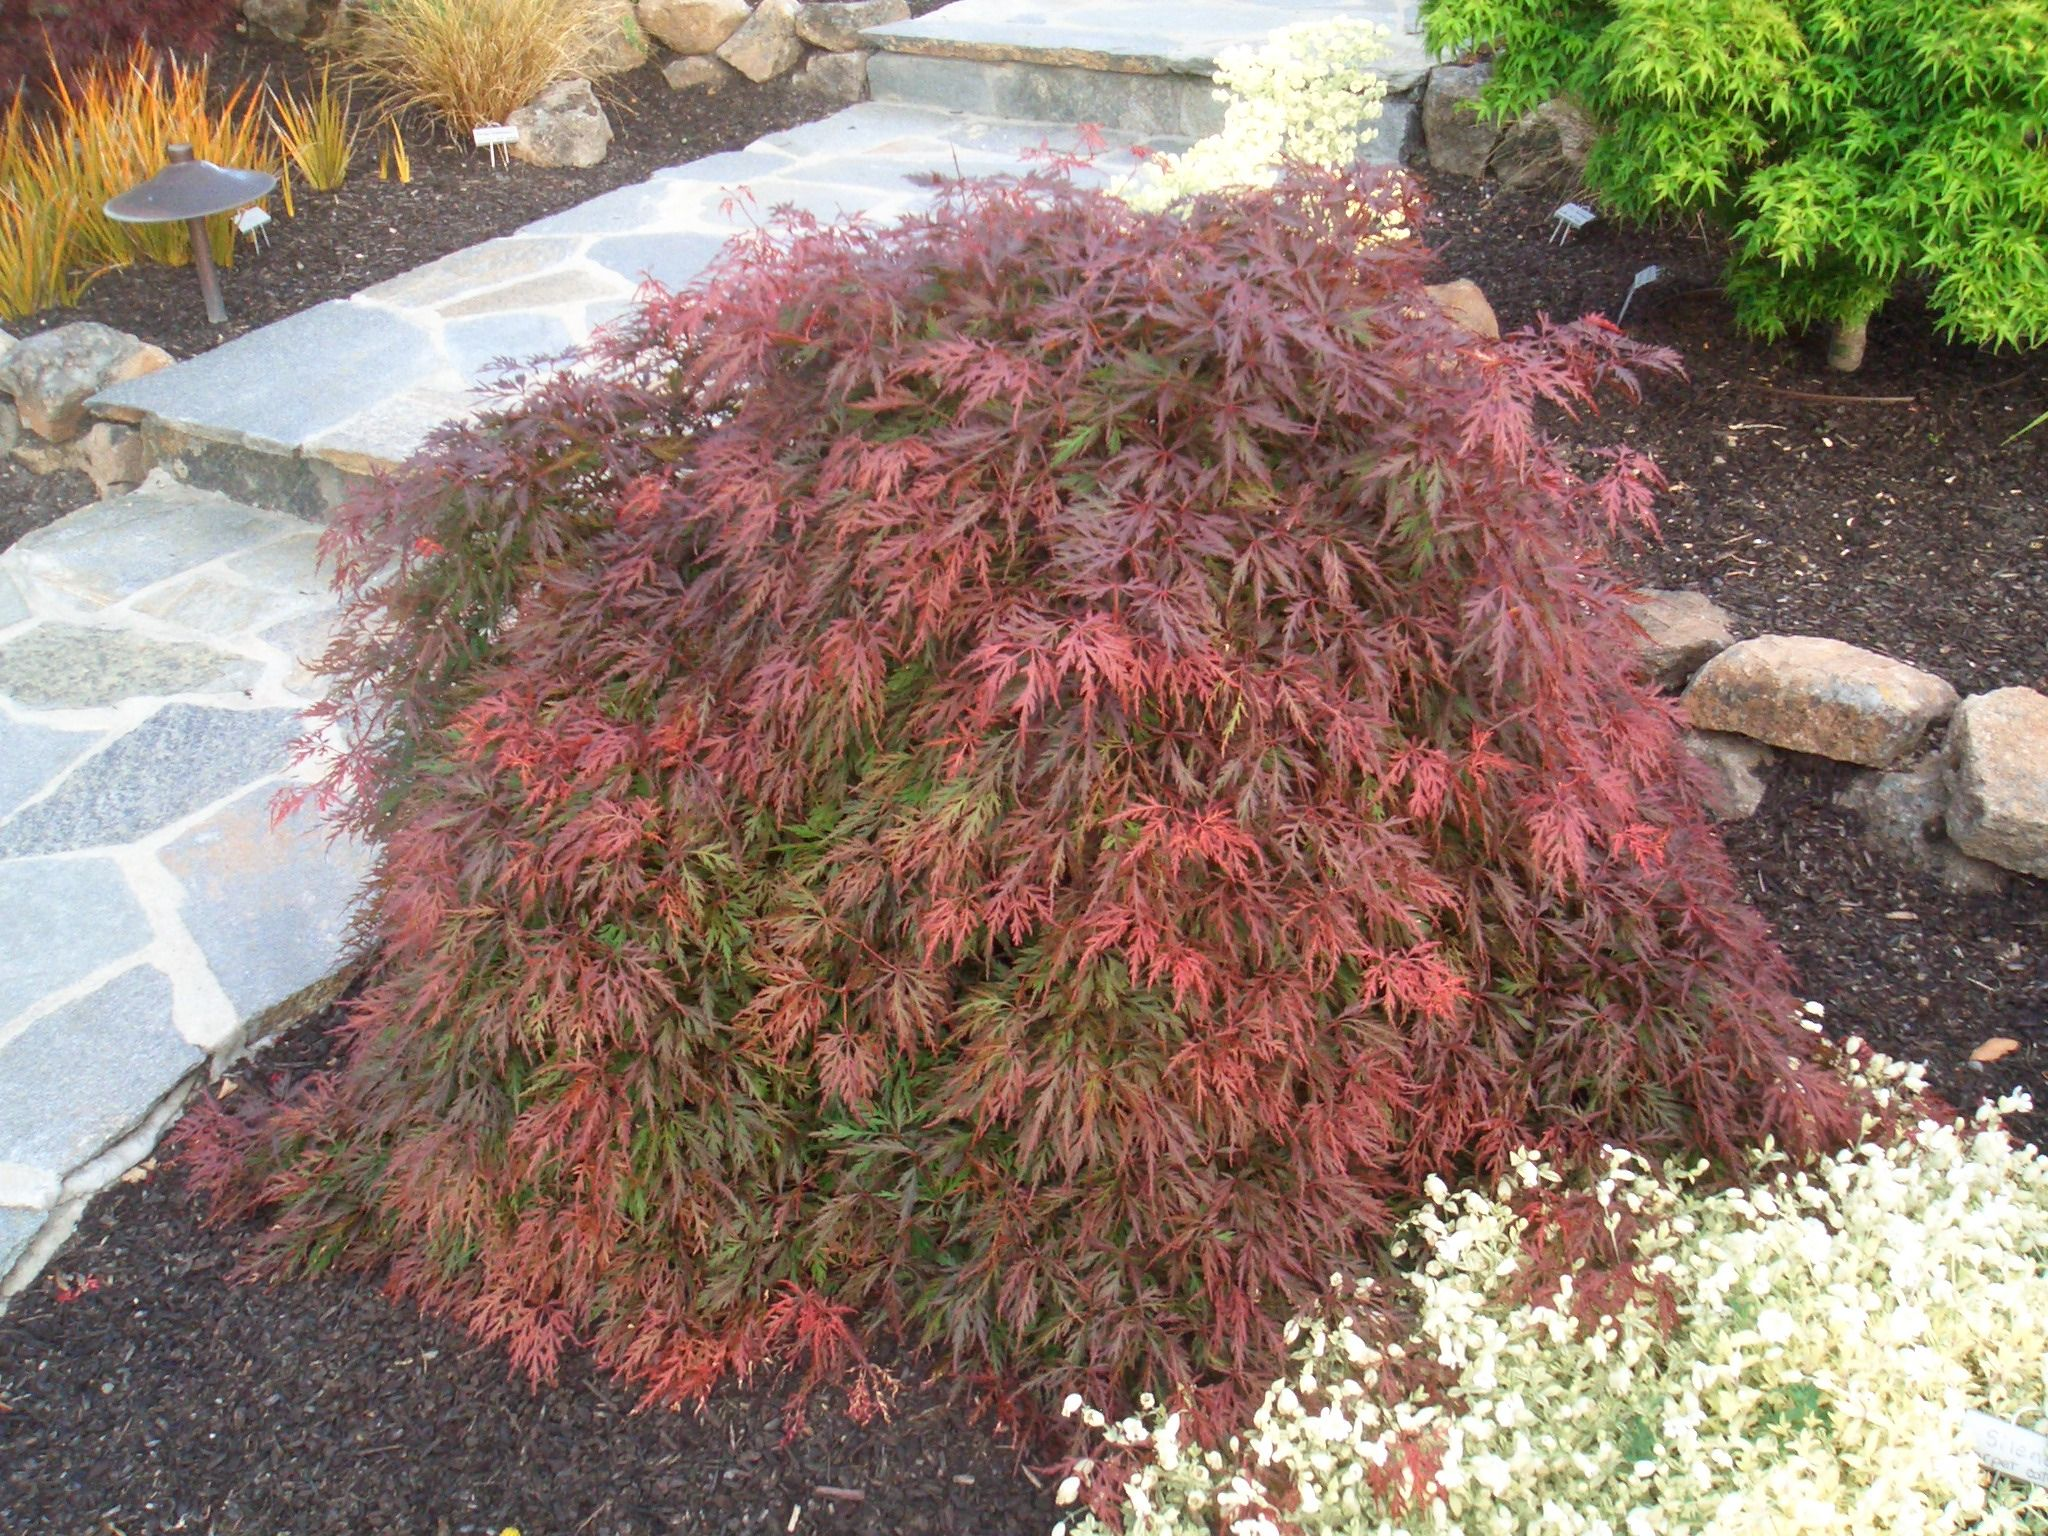 How to care for a fern leaf japanese maple - 25 Best Ideas About Japanese Maple Varieties On Pinterest Sidewalk Landscaping Landscaping Design And Japanese Maple Garden